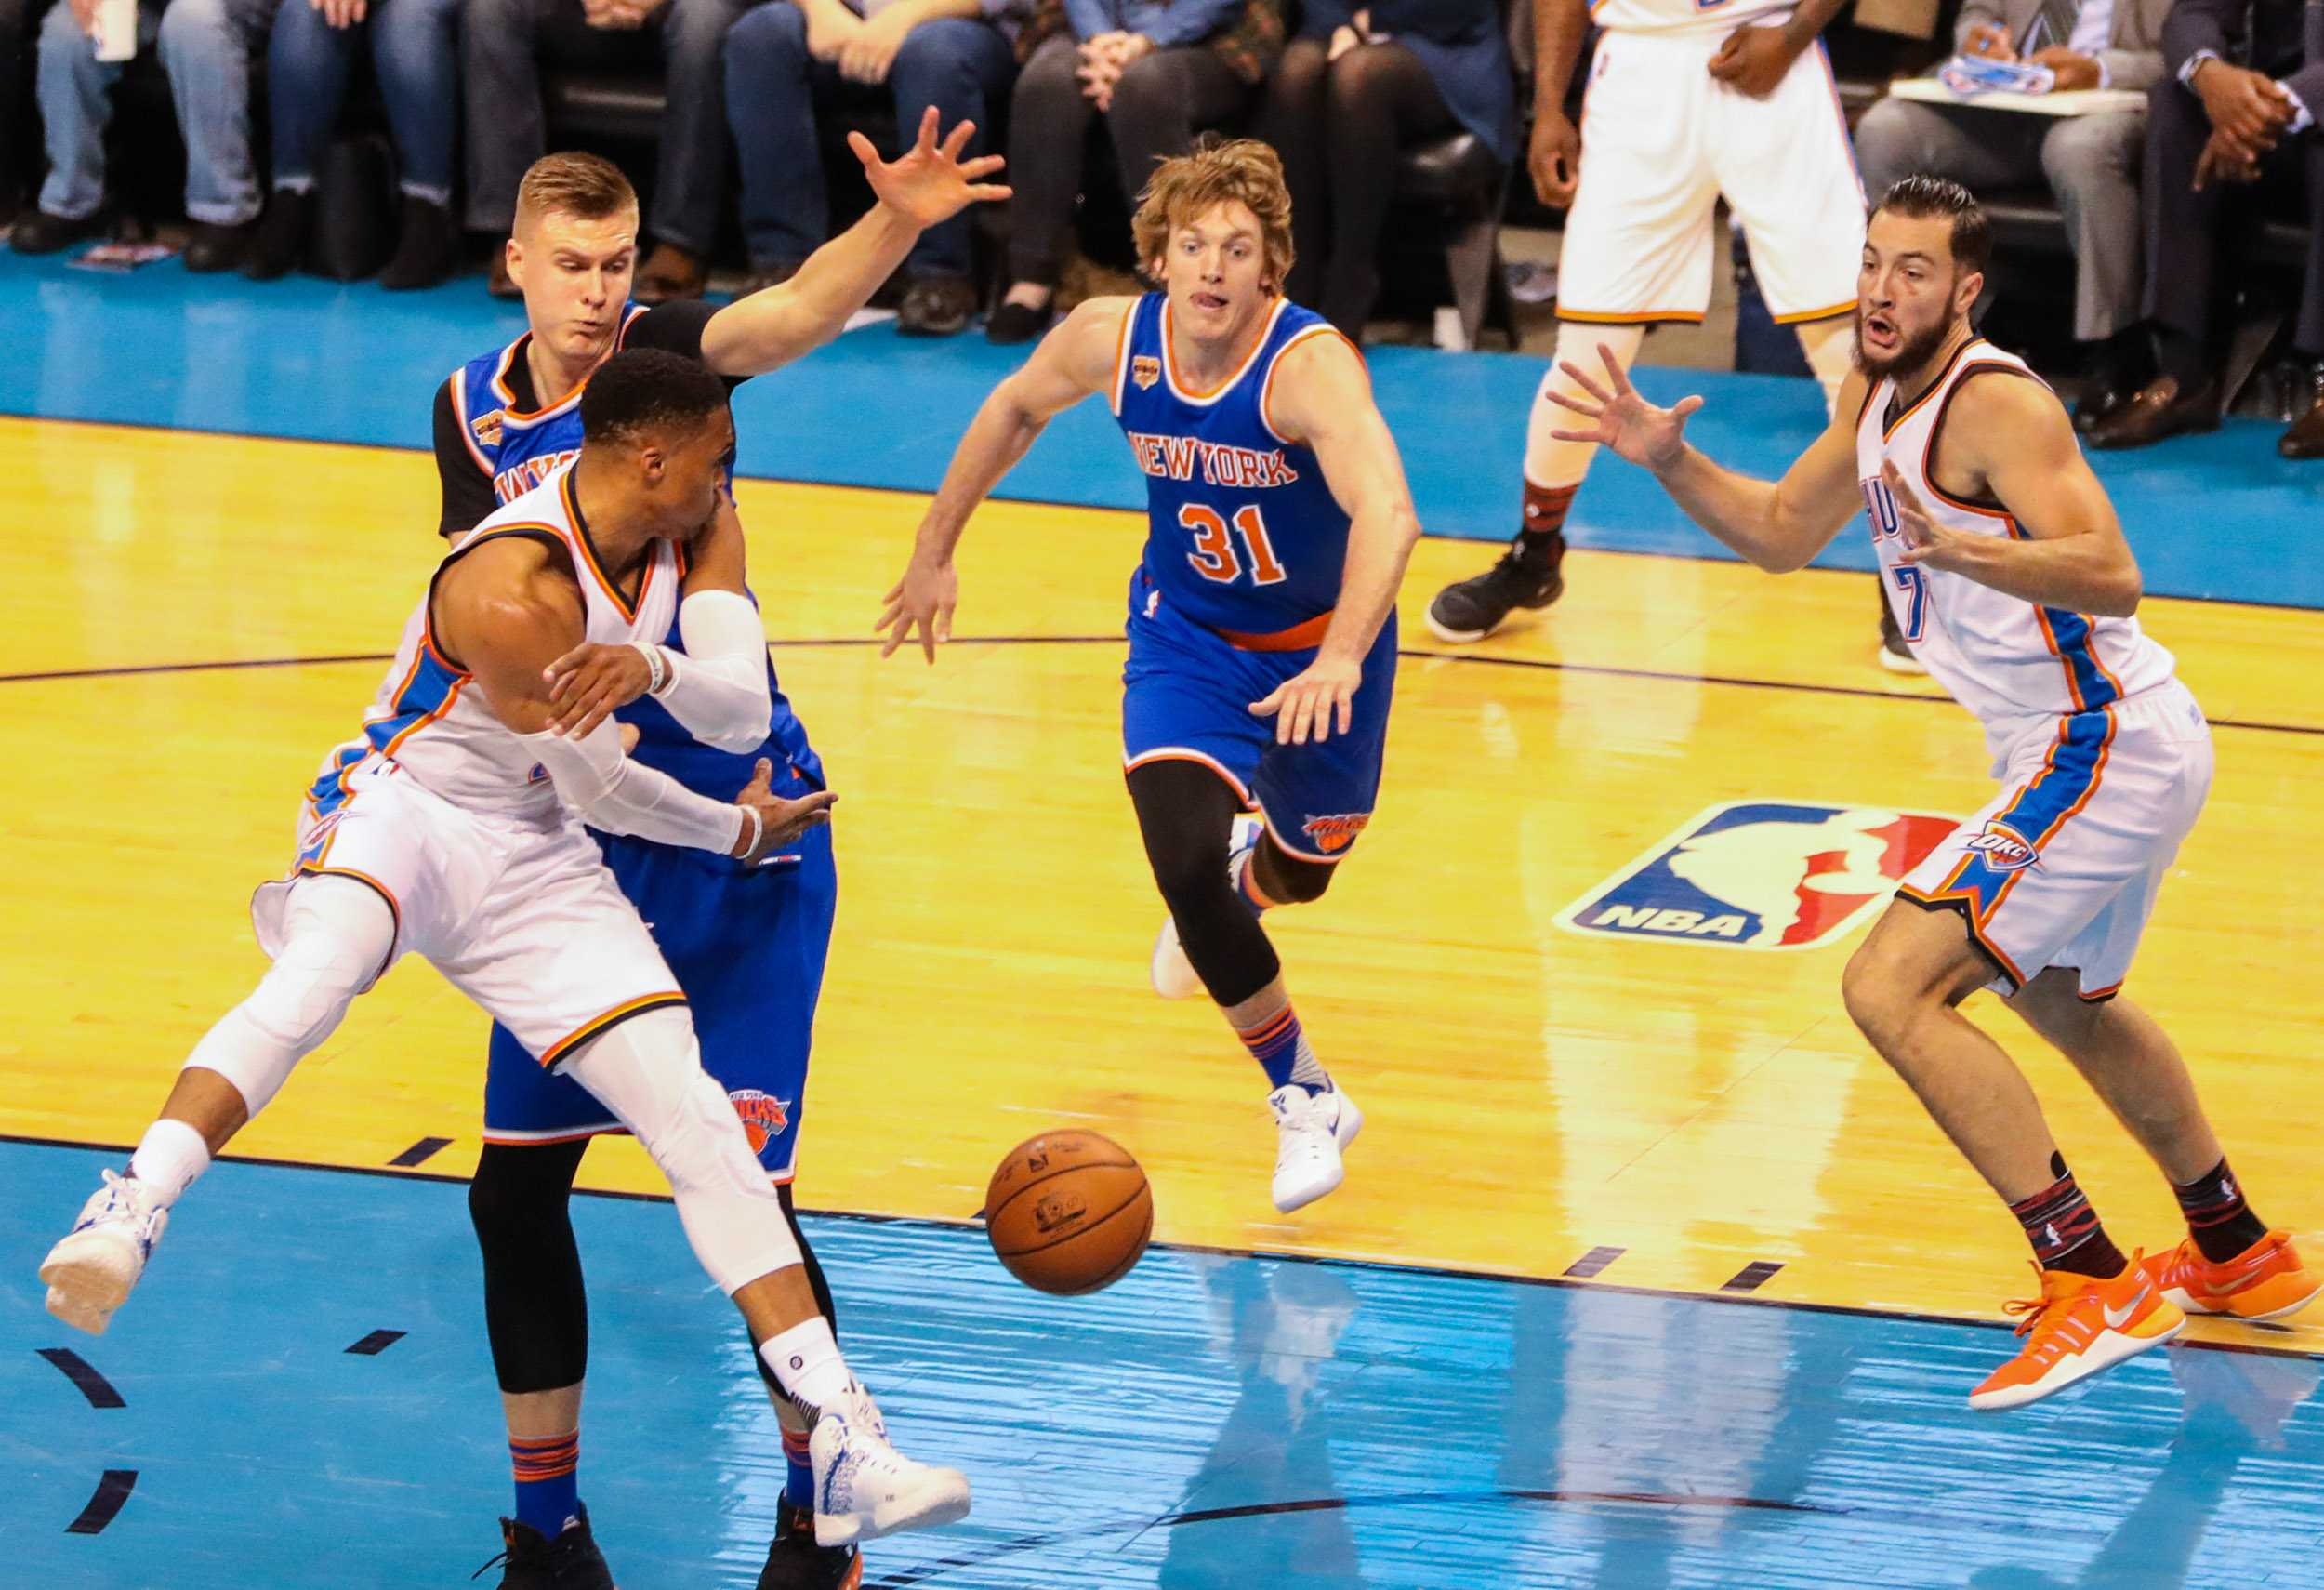 Former Wichita State Shocker Ron Baker, center, lunges for a ball, when the New York Knicks played the Oklahoma City Thunder in Chesapeake Energy Arena. Baker played a total of 18 minutes. (Feb. 15, 2017)